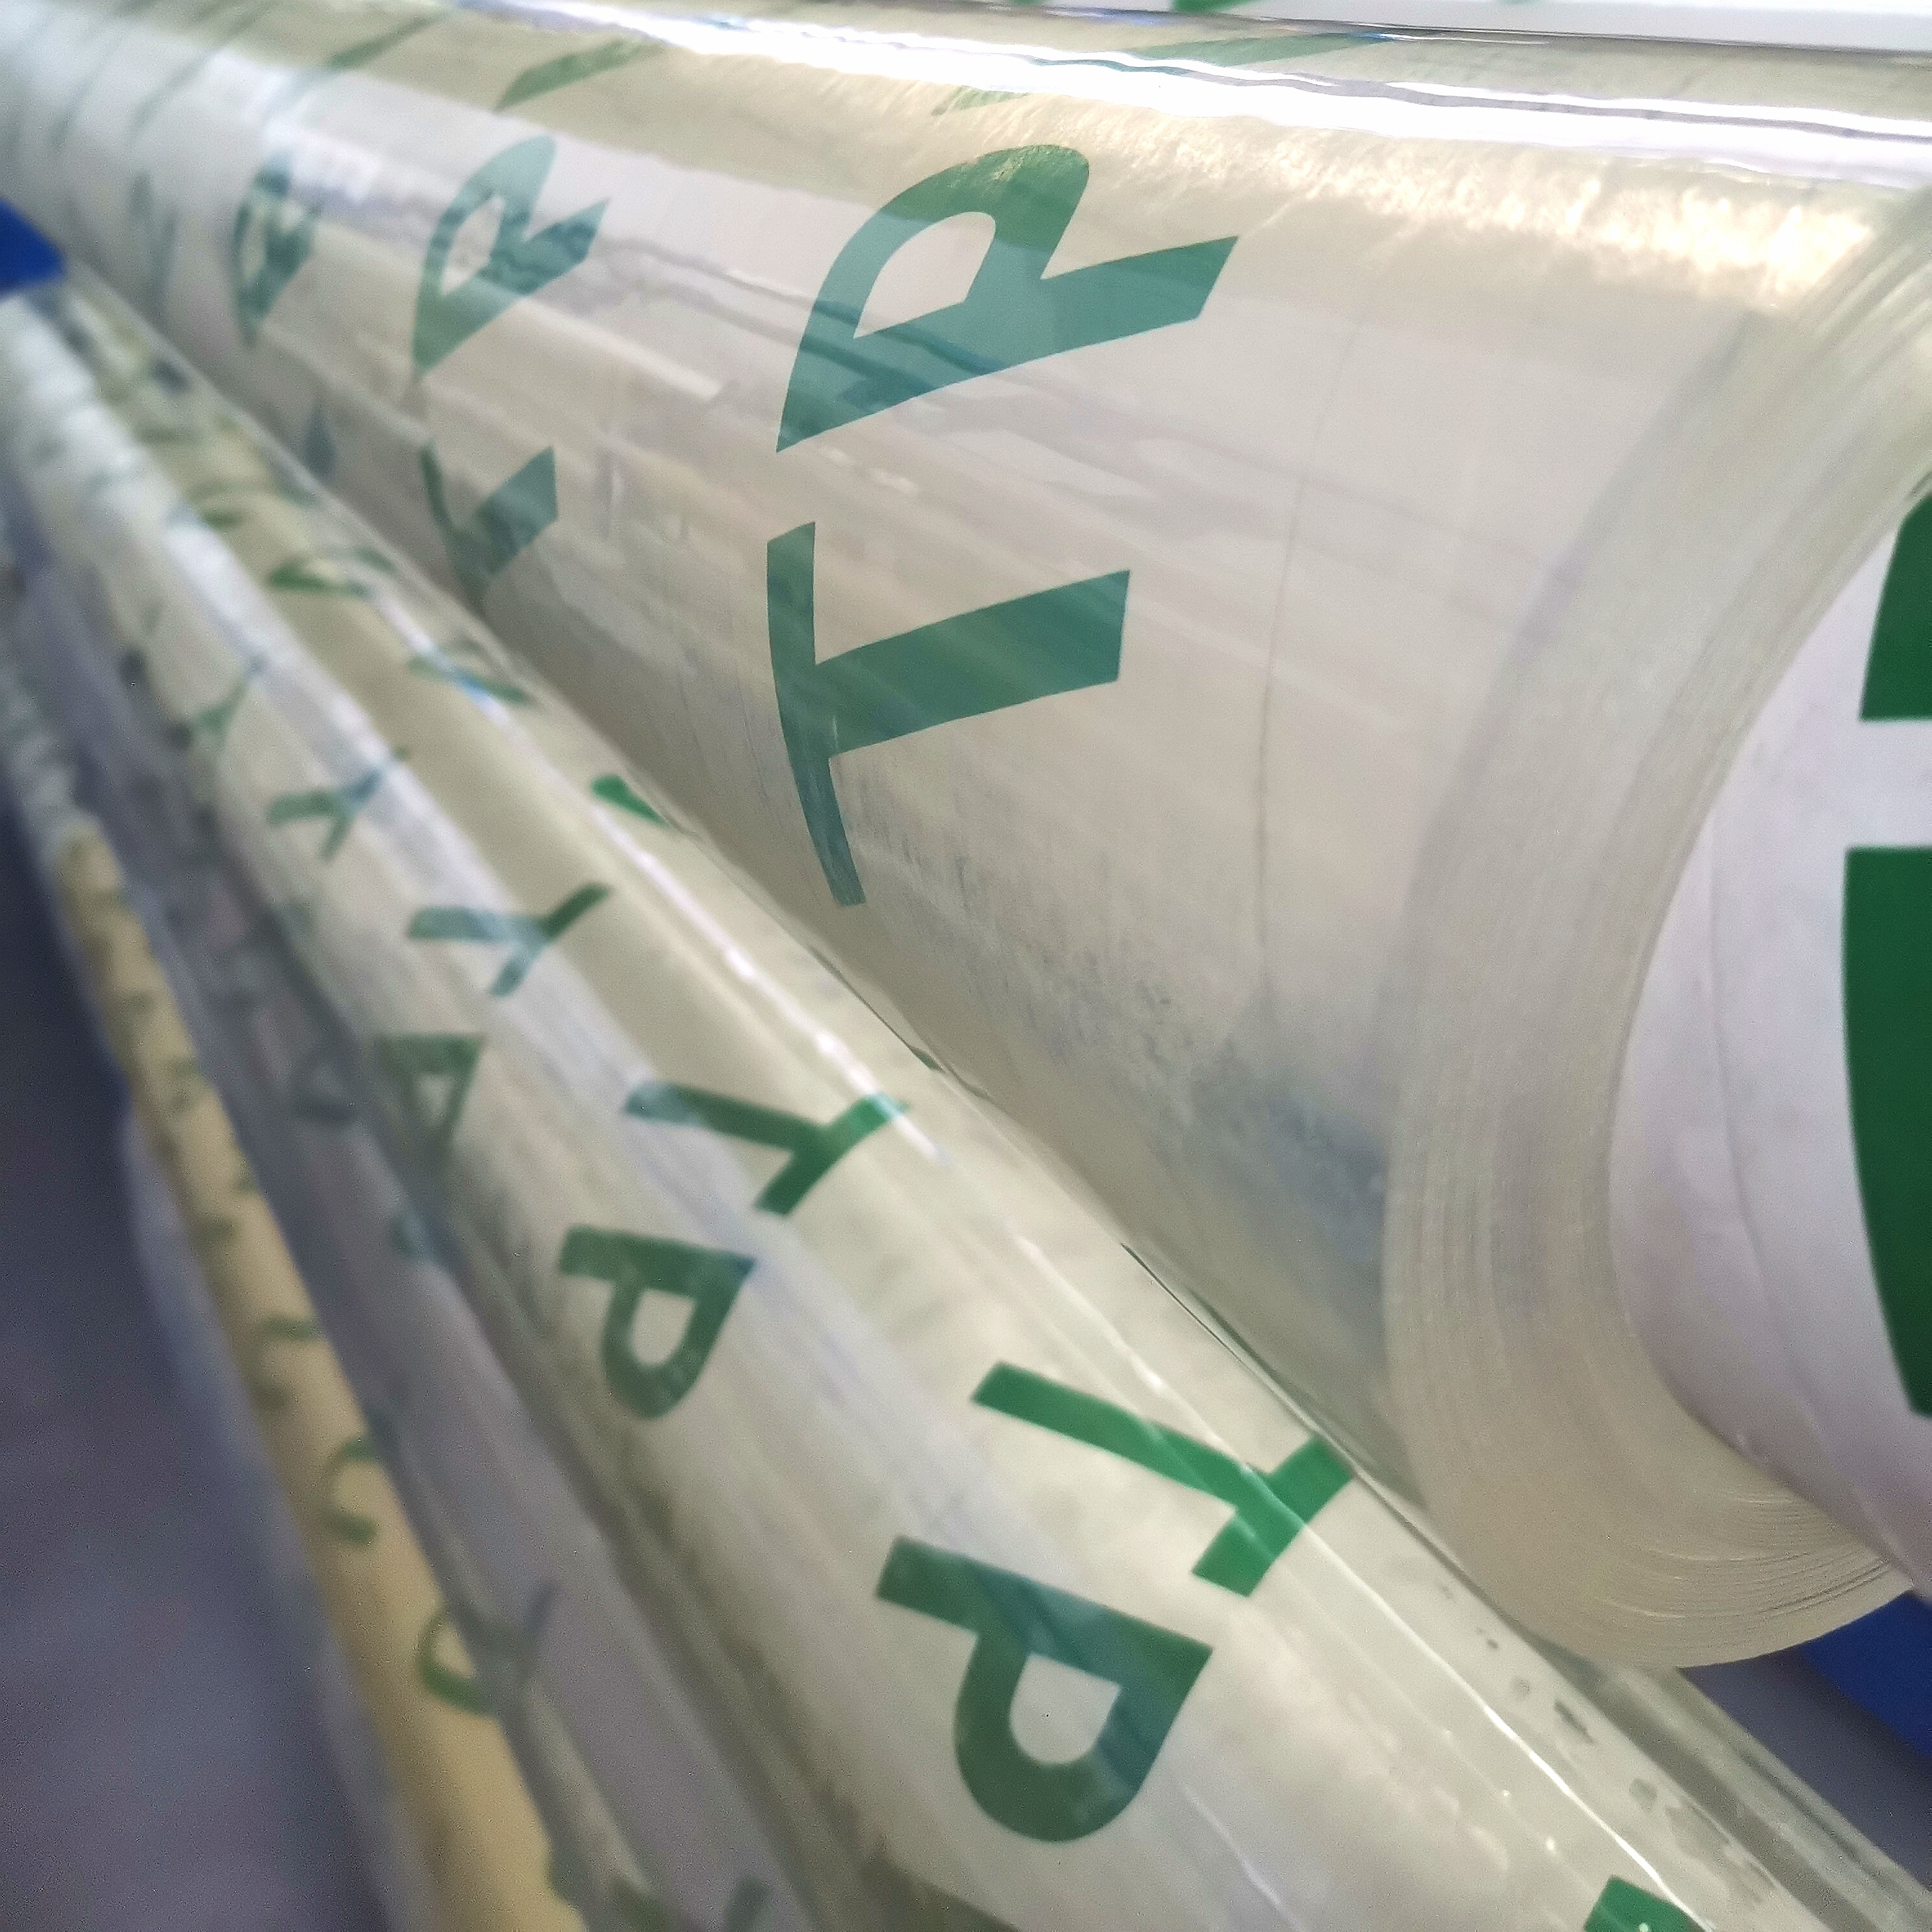 Polyester TPU film,Polyether TPU film,Polyester TPU film factory,Polyether TPU film manufacturer Featured Image